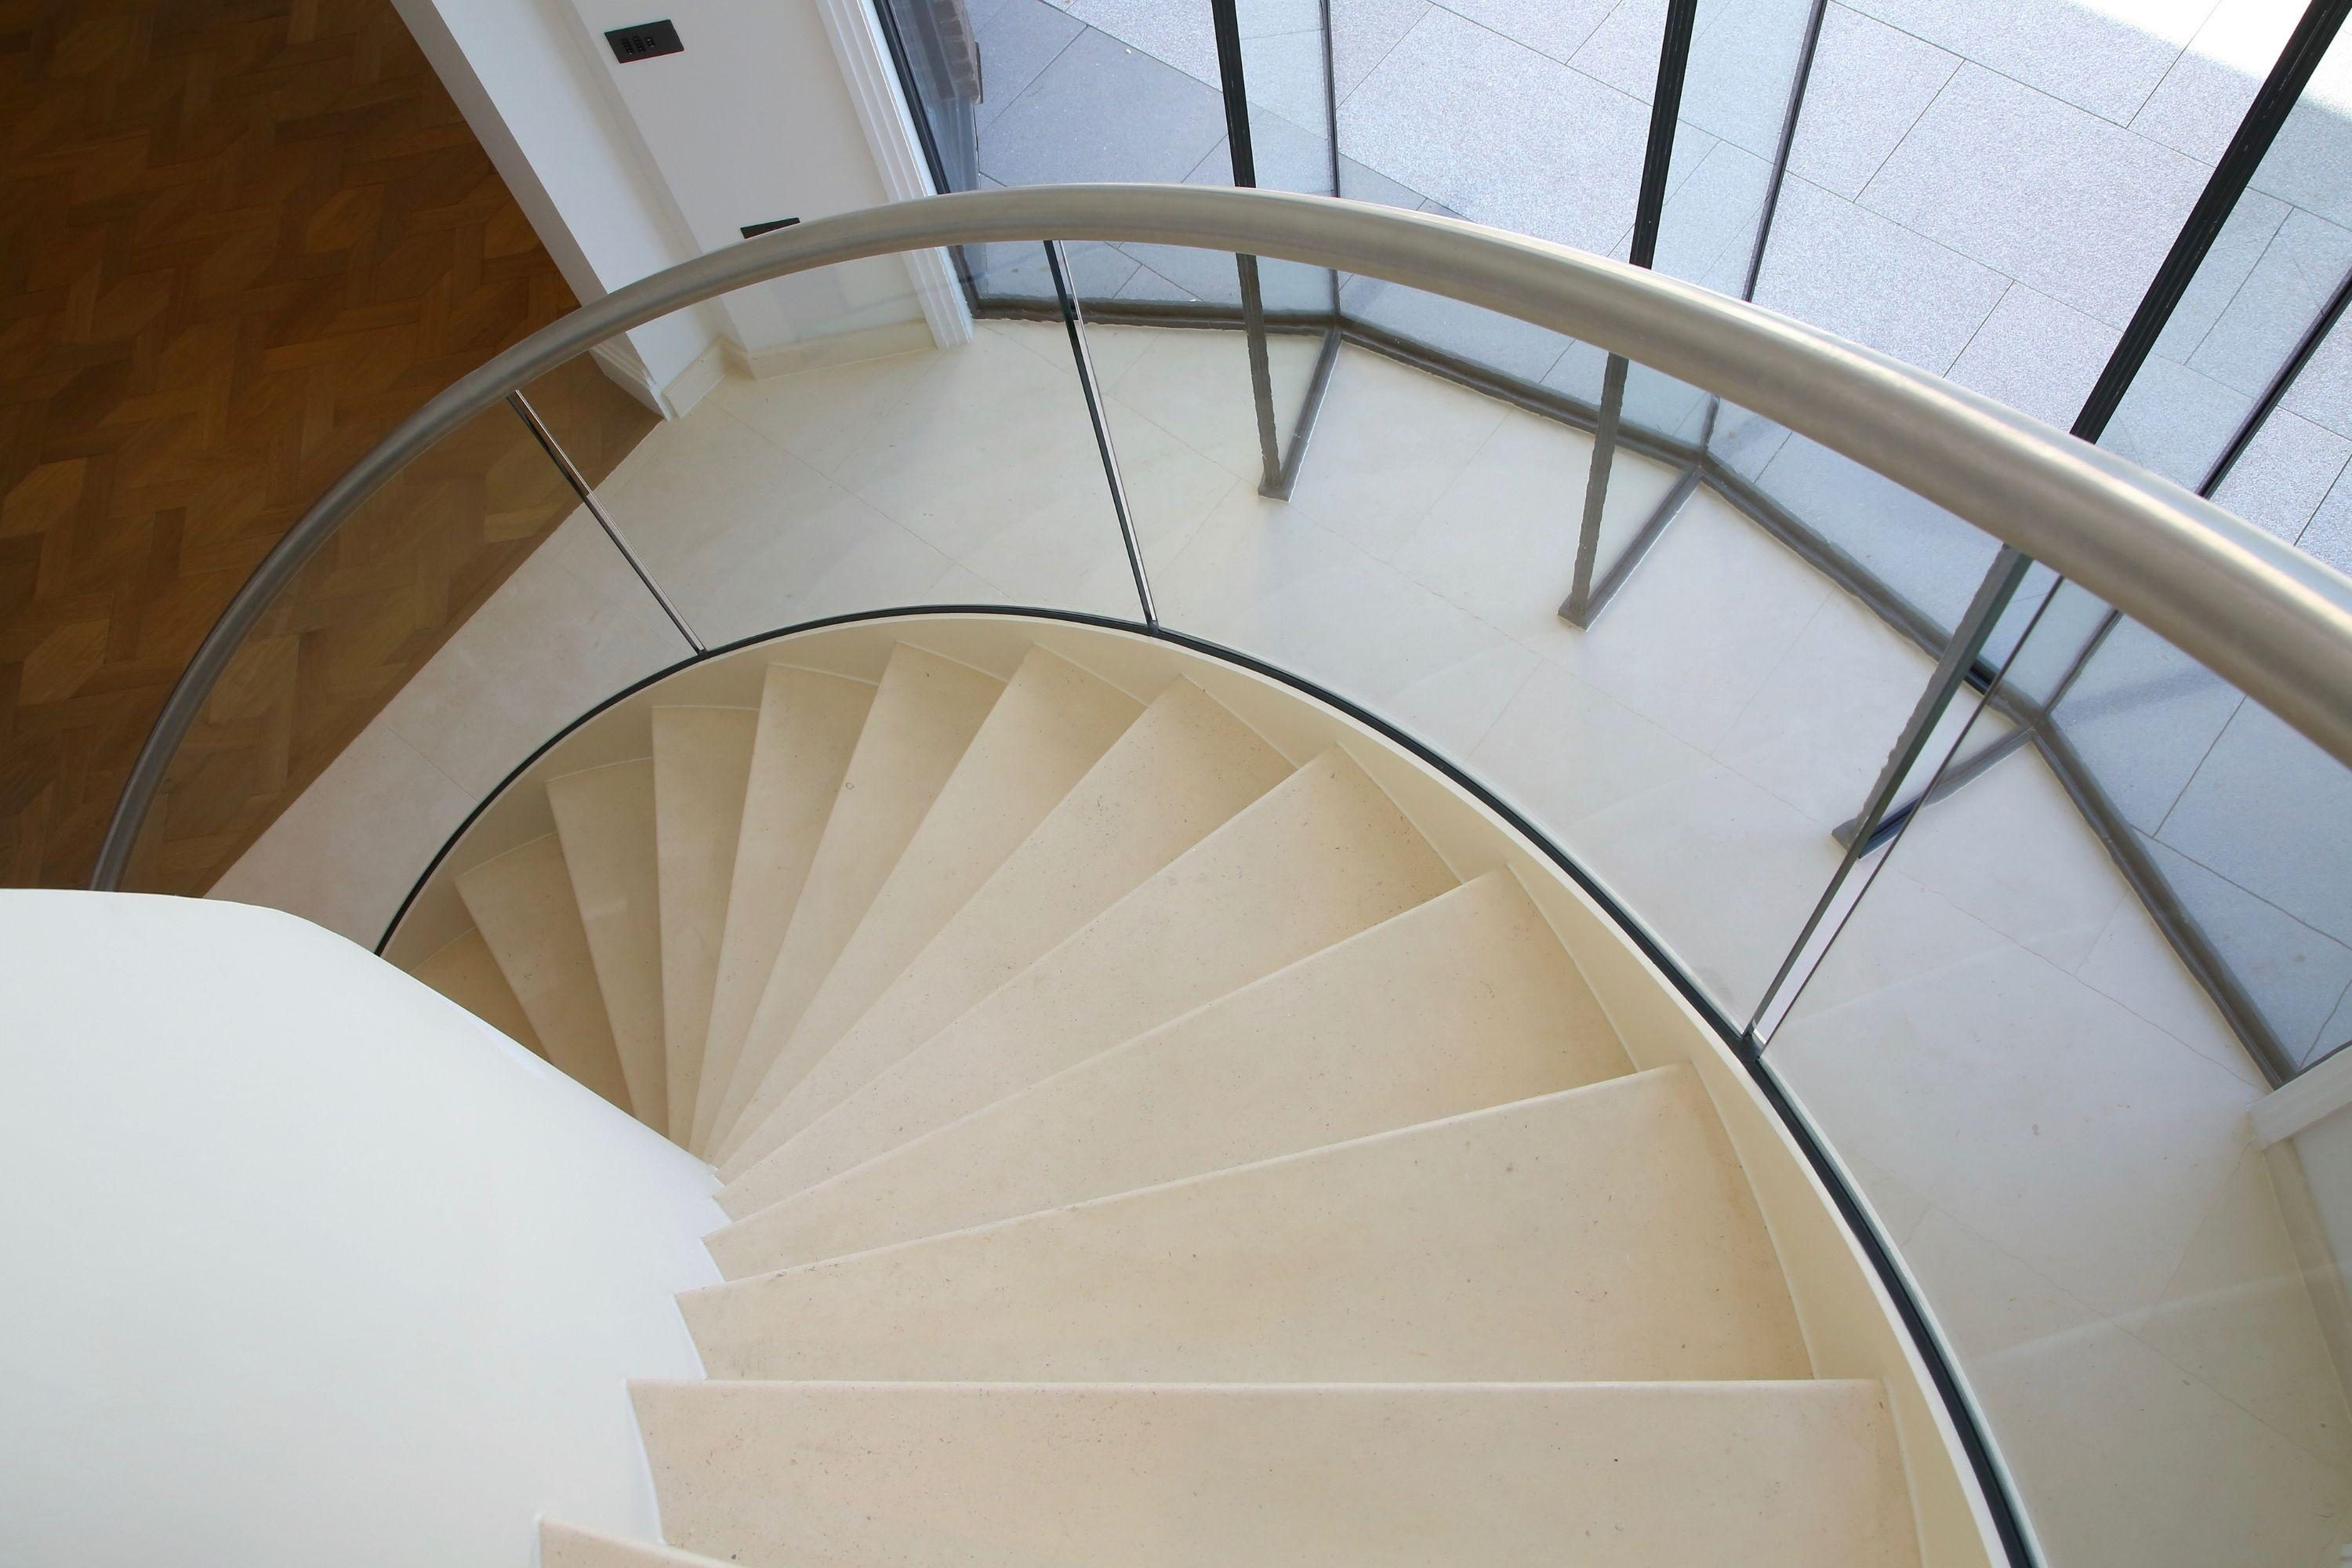 Descending curved staircases